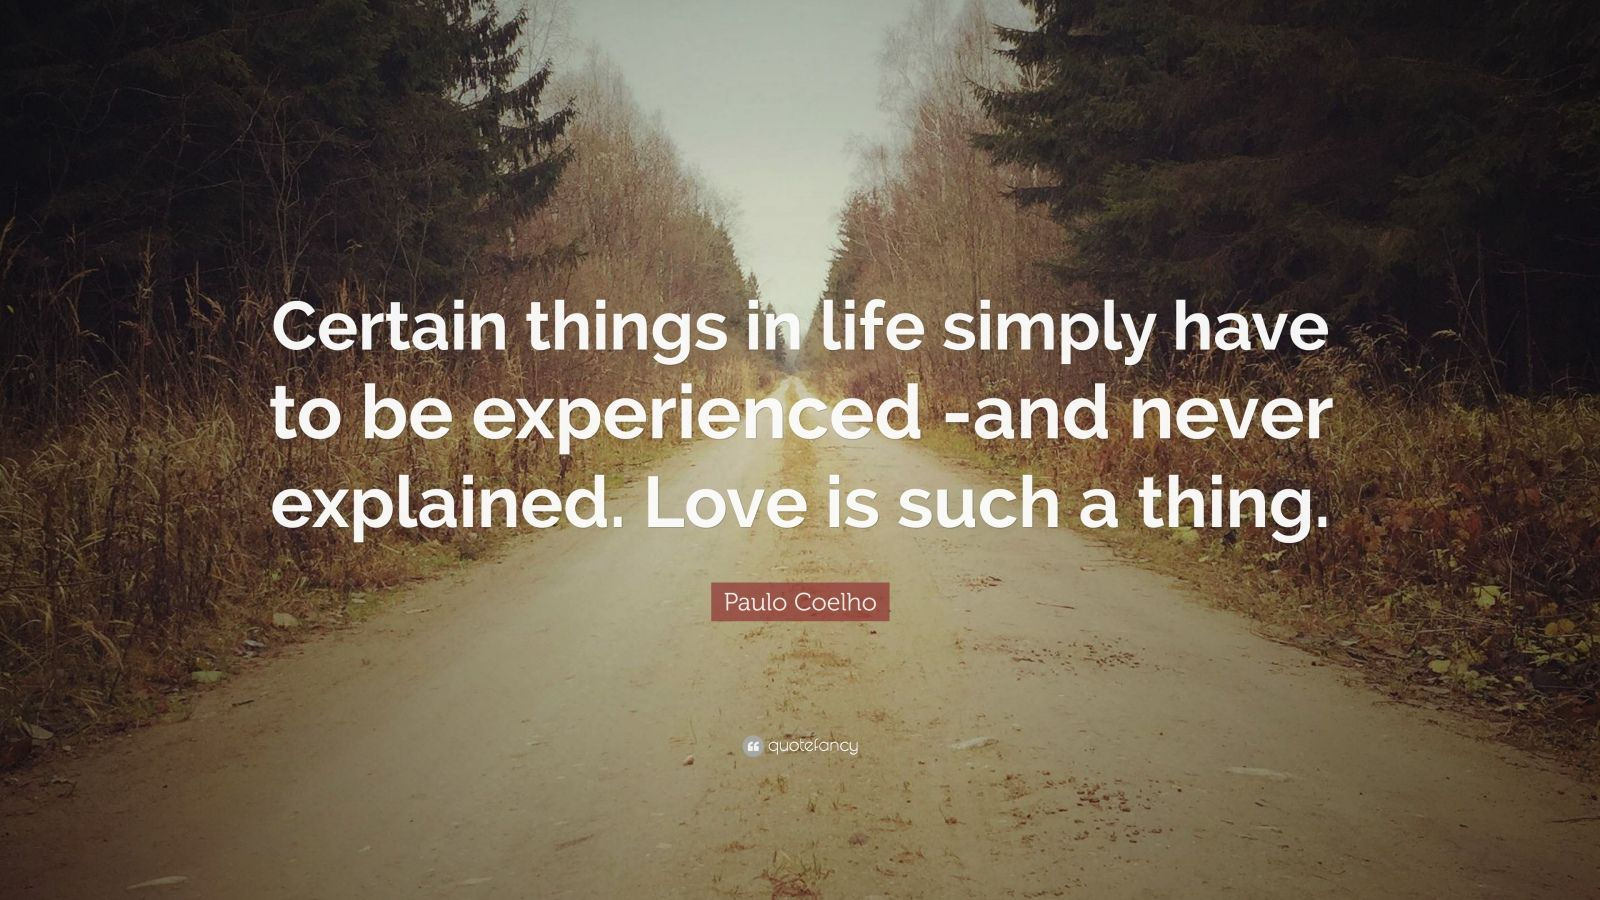 paulo coelho quote certain things in life simply have to